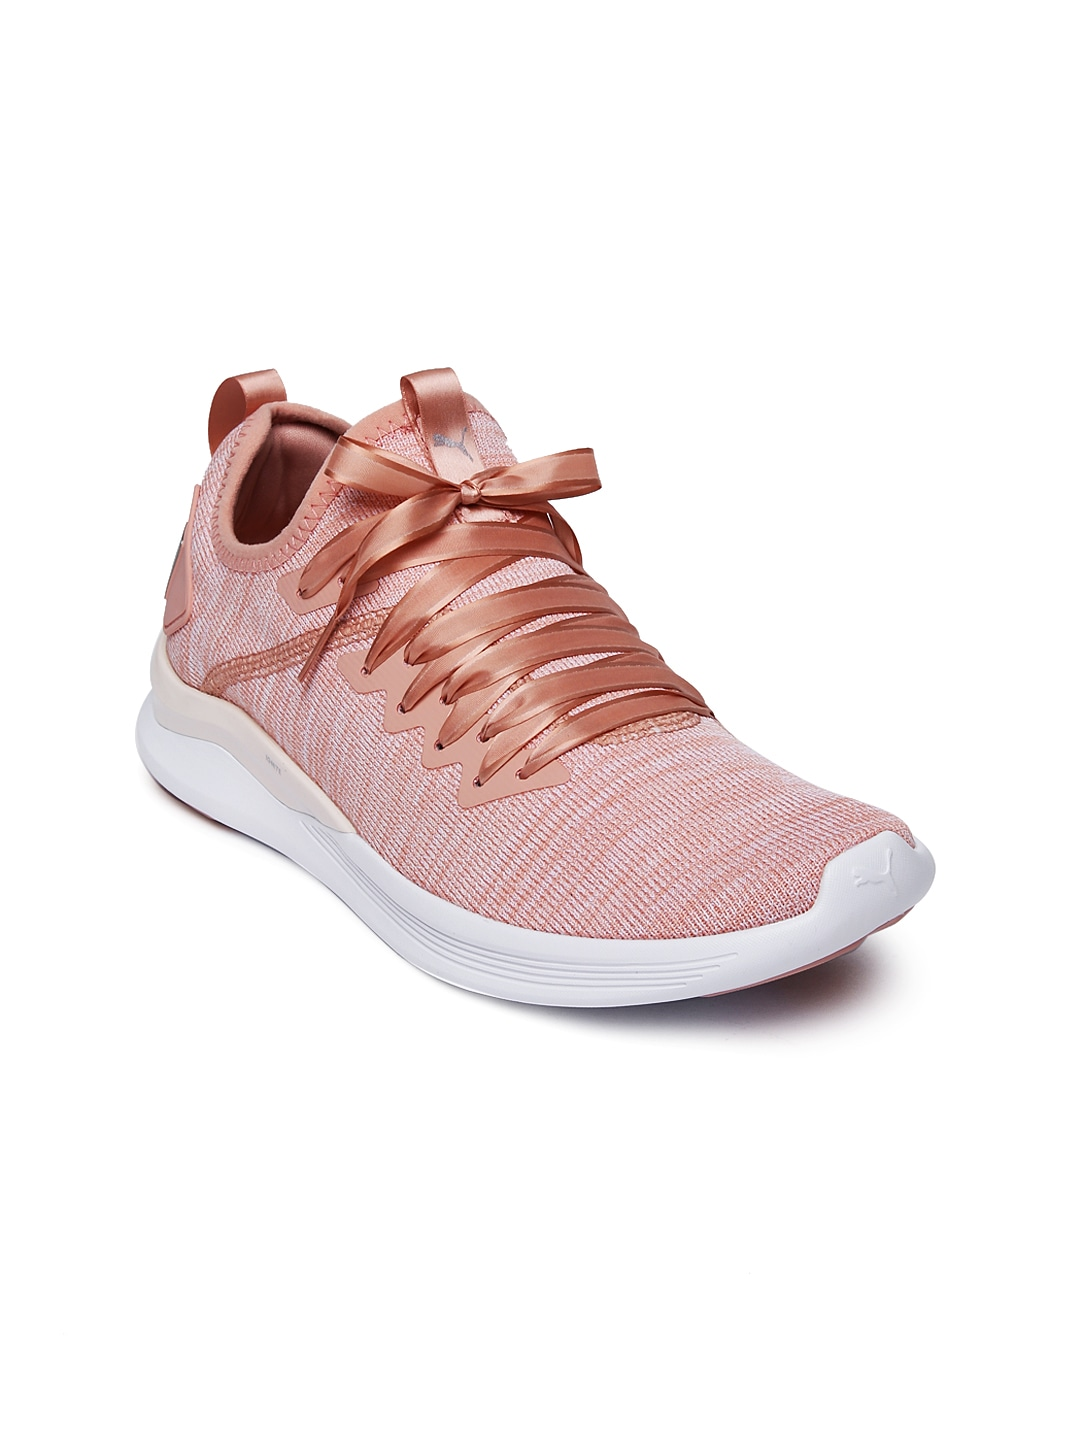 Women s Puma Sports Shoes - Buy Puma Sports Shoes for Women Online in India abc8a39f0